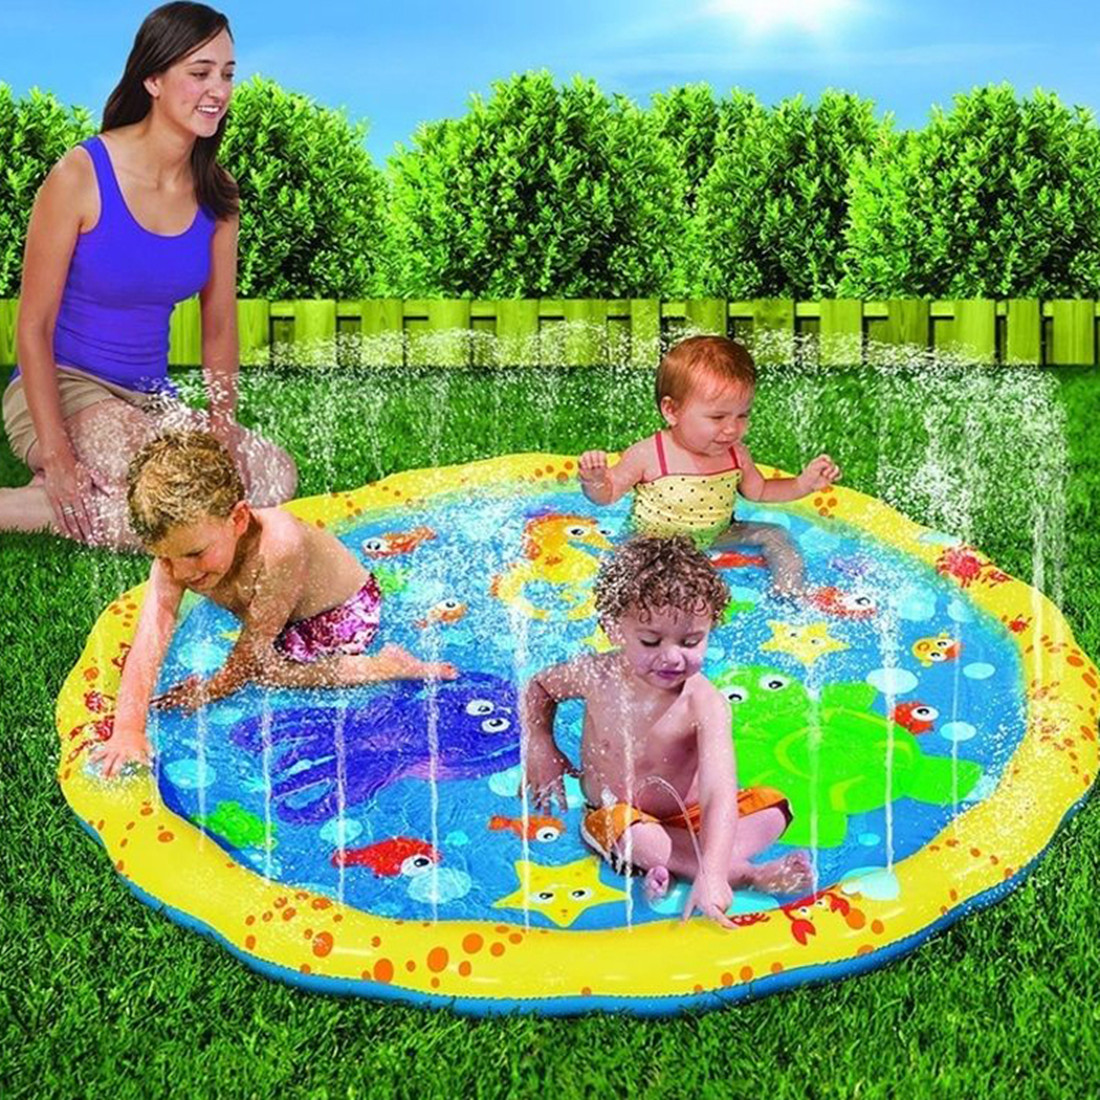 100cm Round Inflatable Baby Pad Water Mat Patted Play Cushion For Infant Baby & Kids' Floats